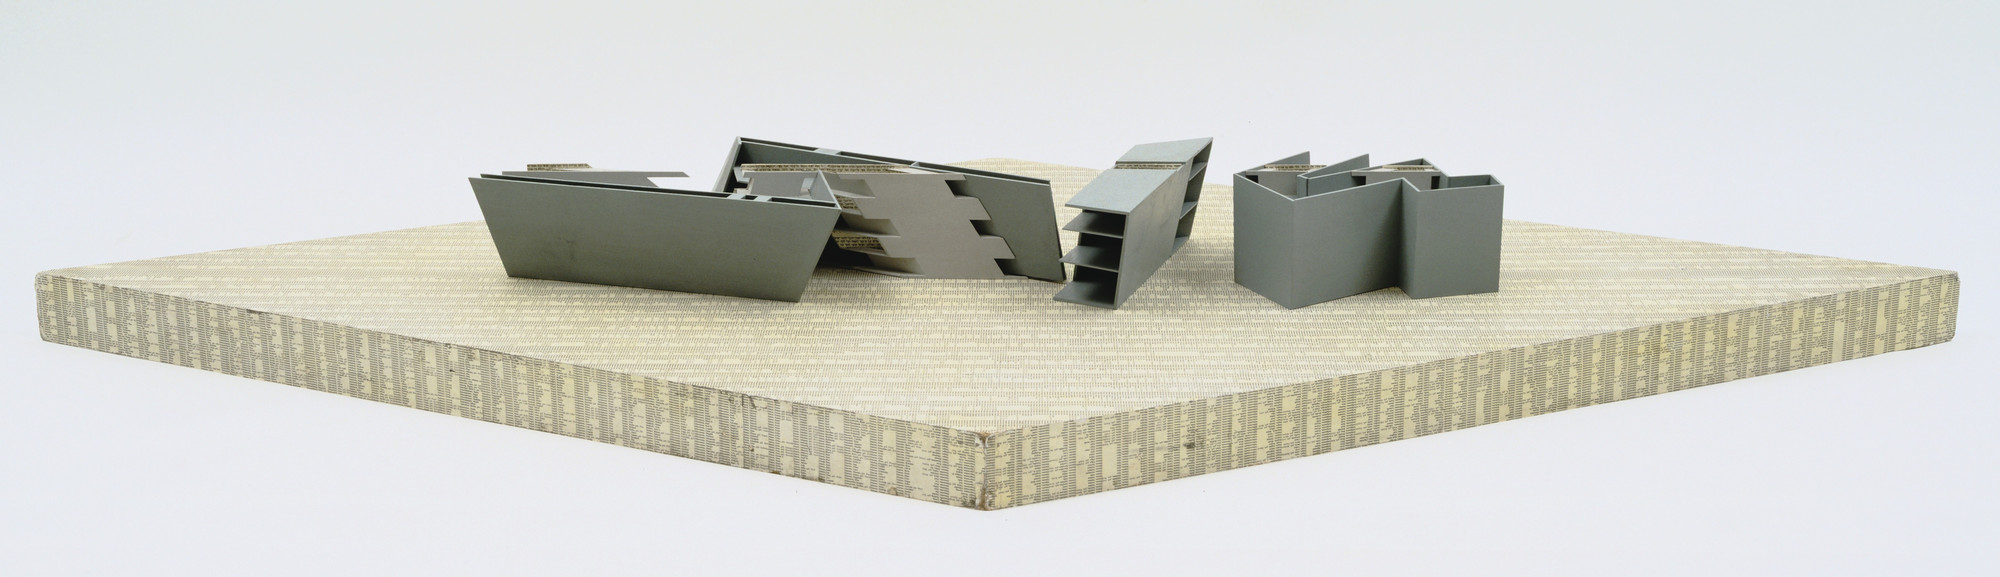 Daniel Libeskind. Berlin Museum with the Jewish Museum, Scale model 1:100. 1989-2001